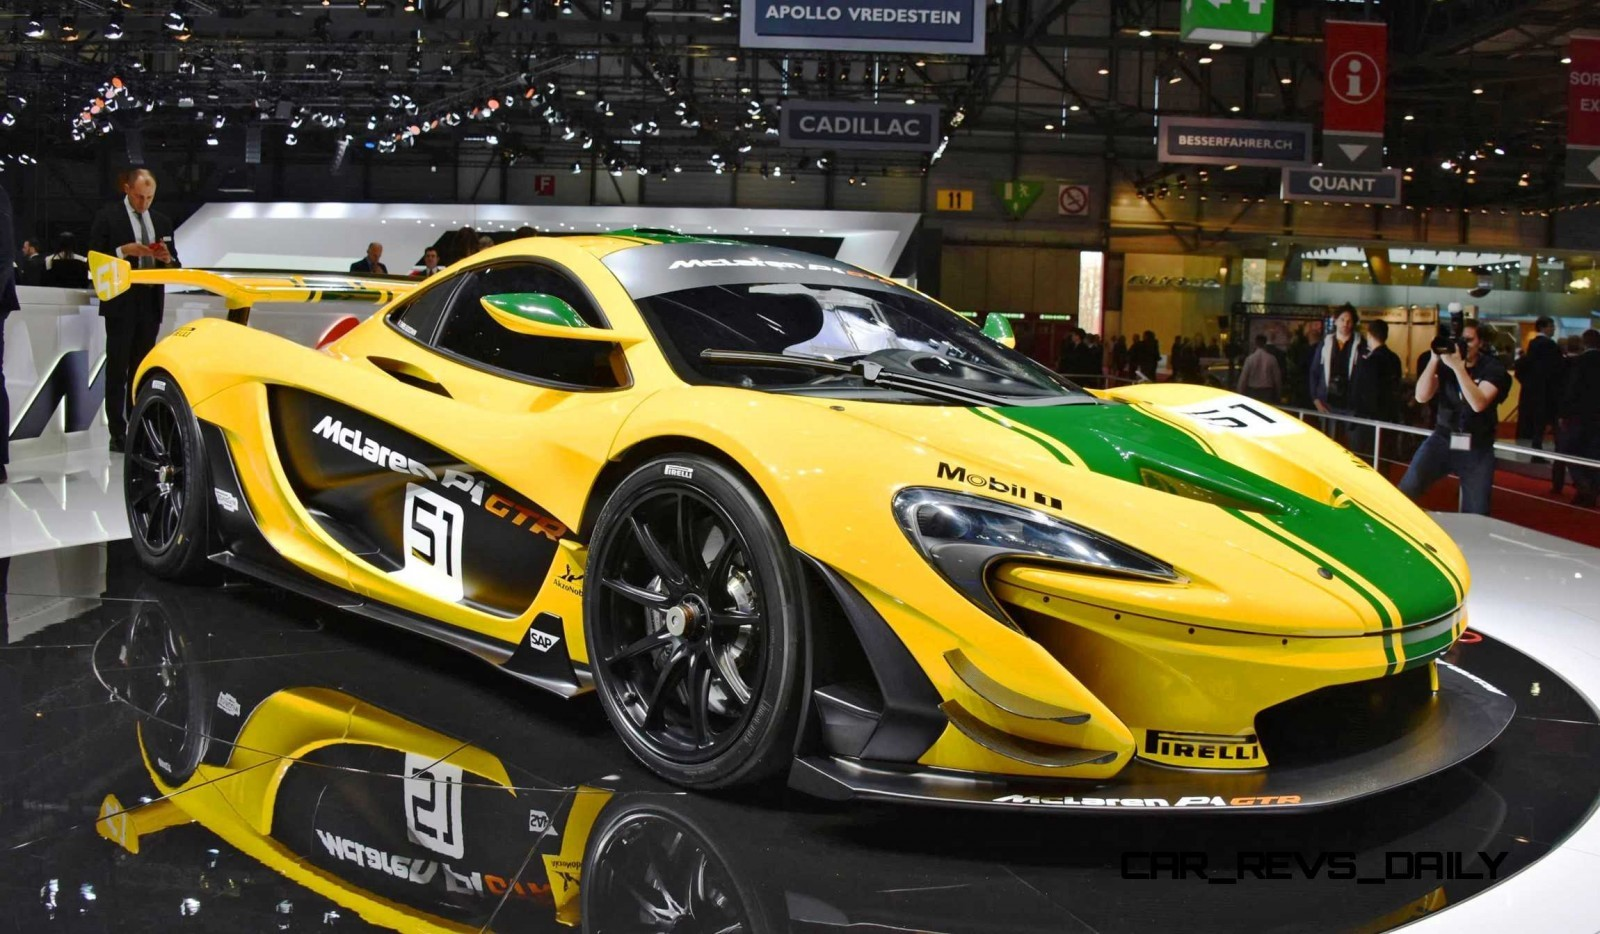 2016 mclaren p1 gtr meets 1997 mclaren f1 gt longtail in geneva. Black Bedroom Furniture Sets. Home Design Ideas